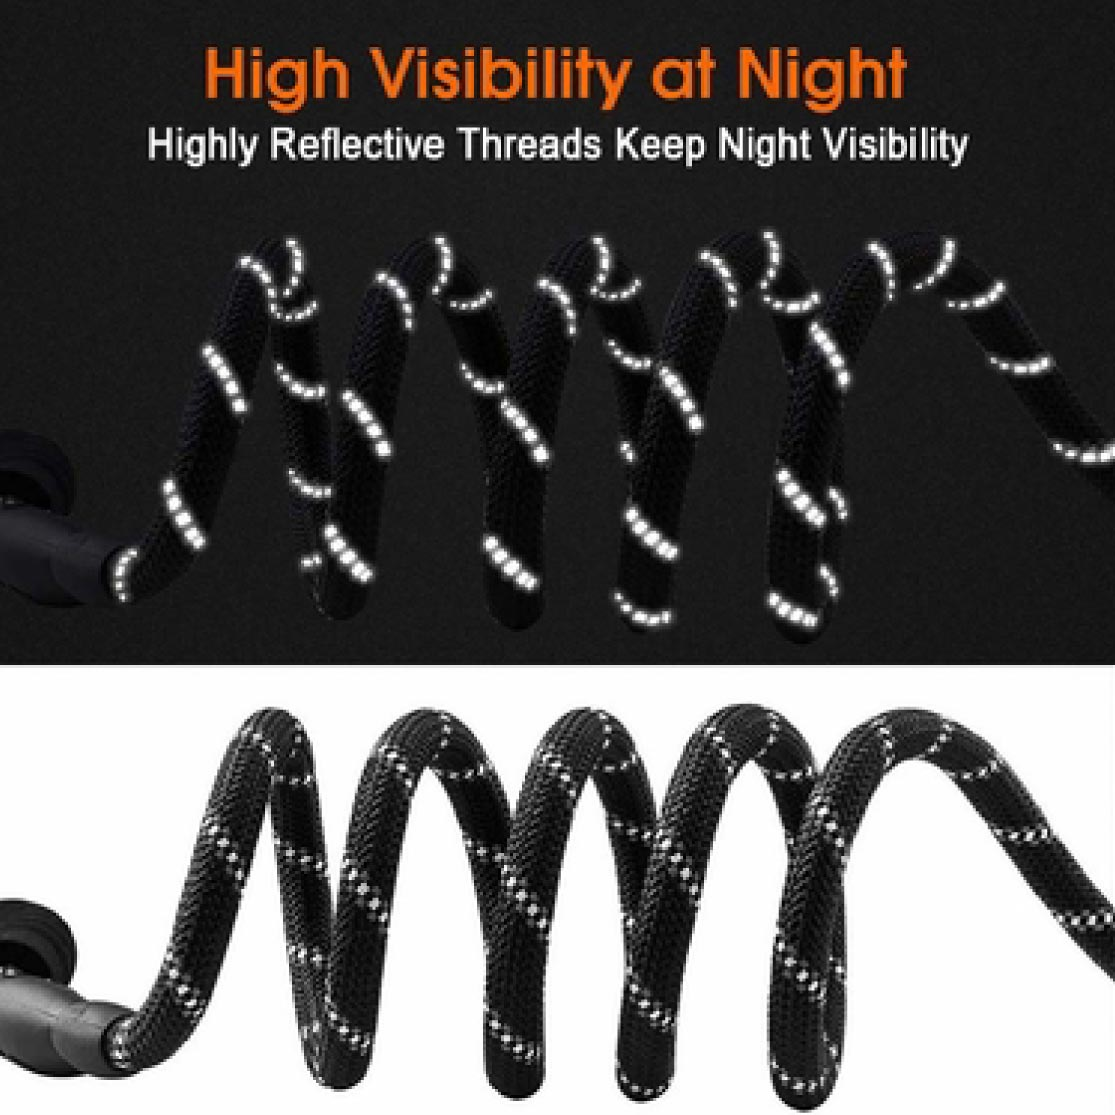 High Visibility at Night; Highly Reflective Threads Keep Night Visibility